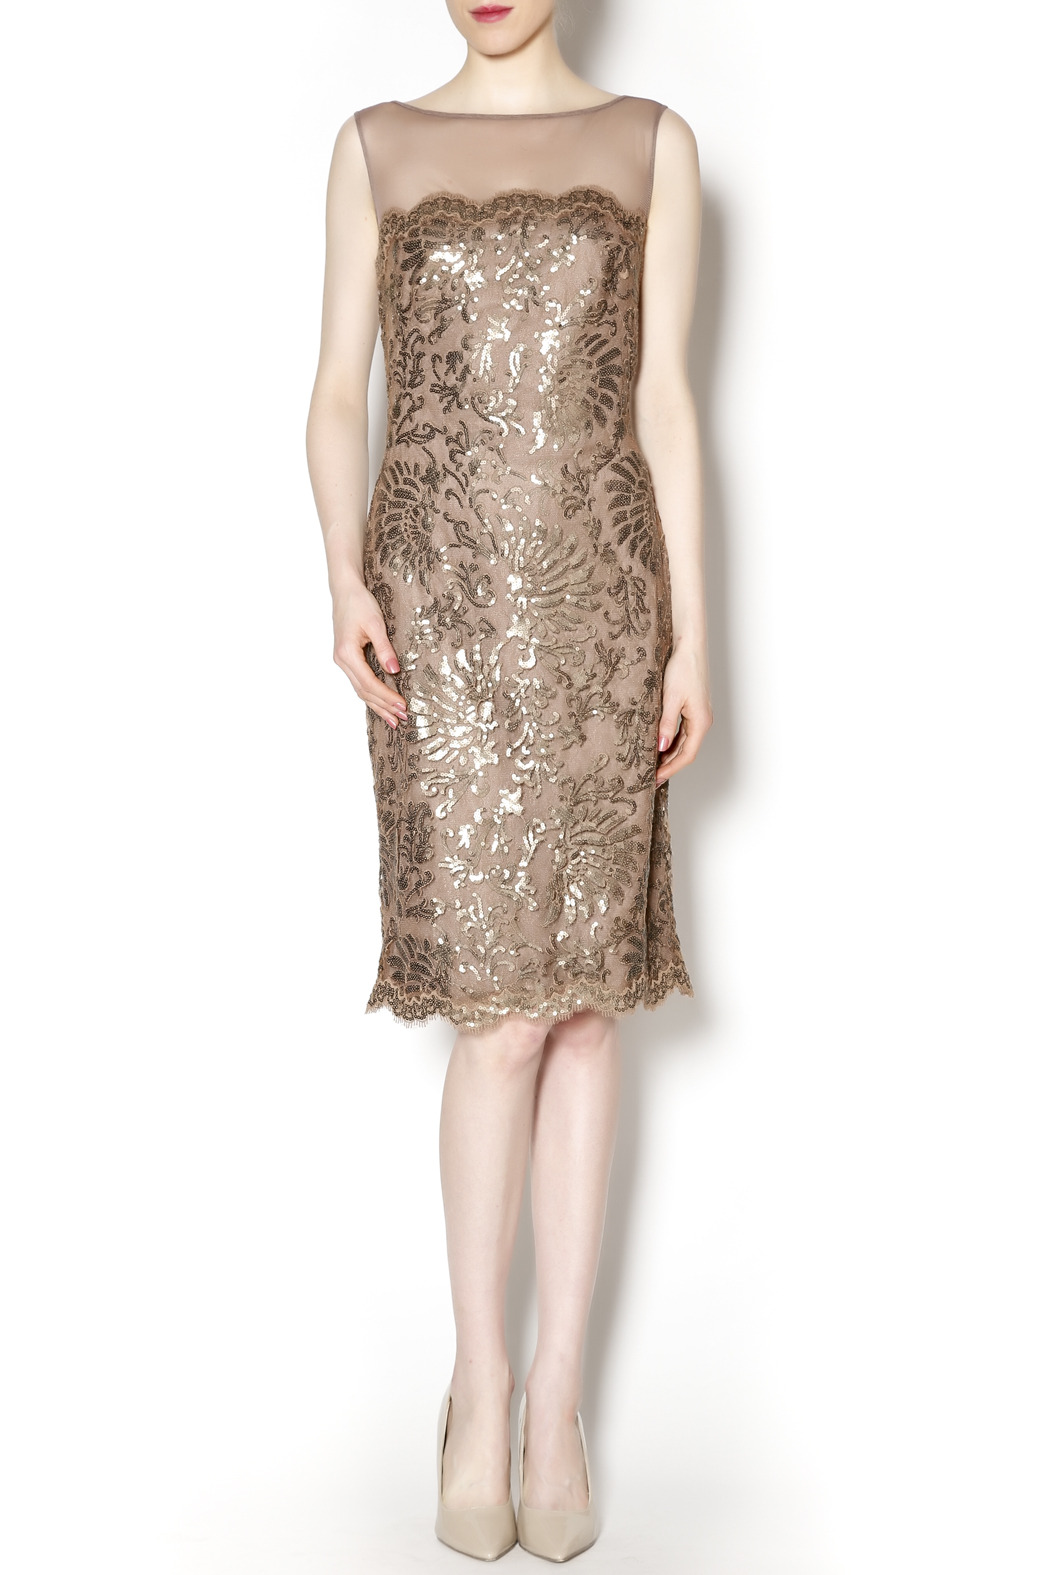 Tadashi Shoji Sequin Lace Dress from Avalon by Tiger Lily — Shoptiques